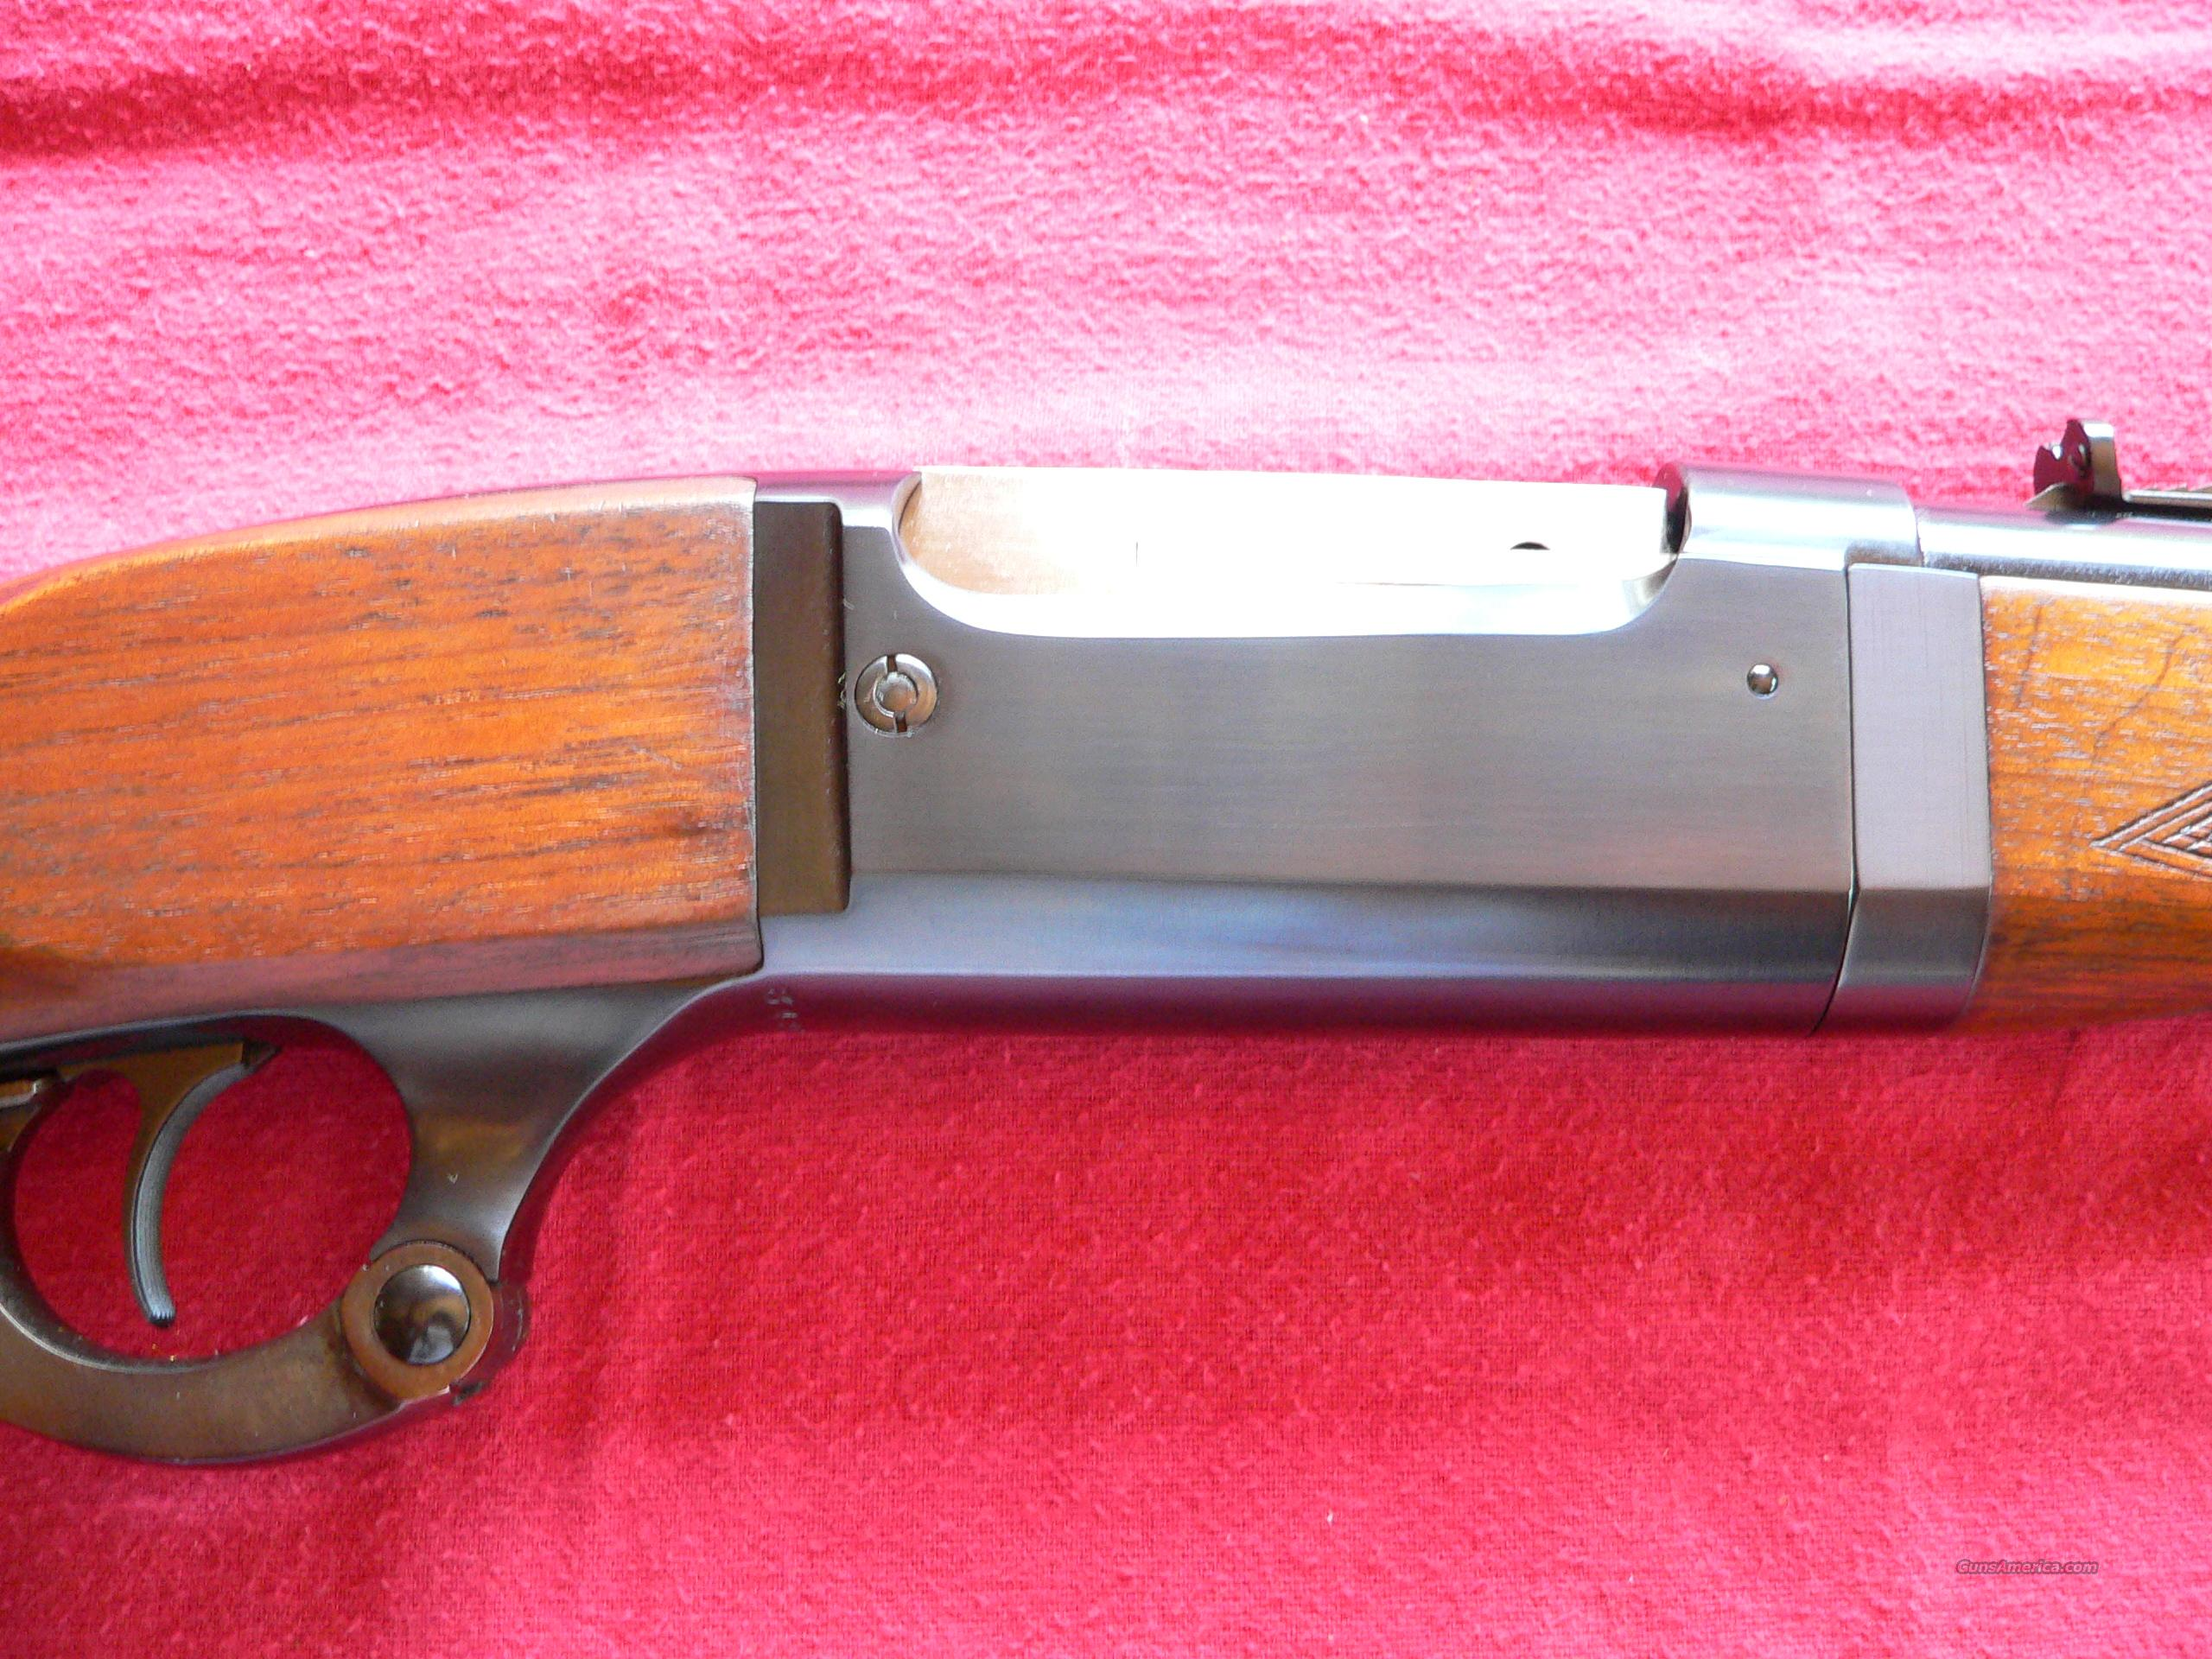 Savage Model 99 Takedown cal. 300 Savage Lever-action Rifle manufactured in 1934  Guns > Rifles > Savage Rifles > Model 95/99 Family